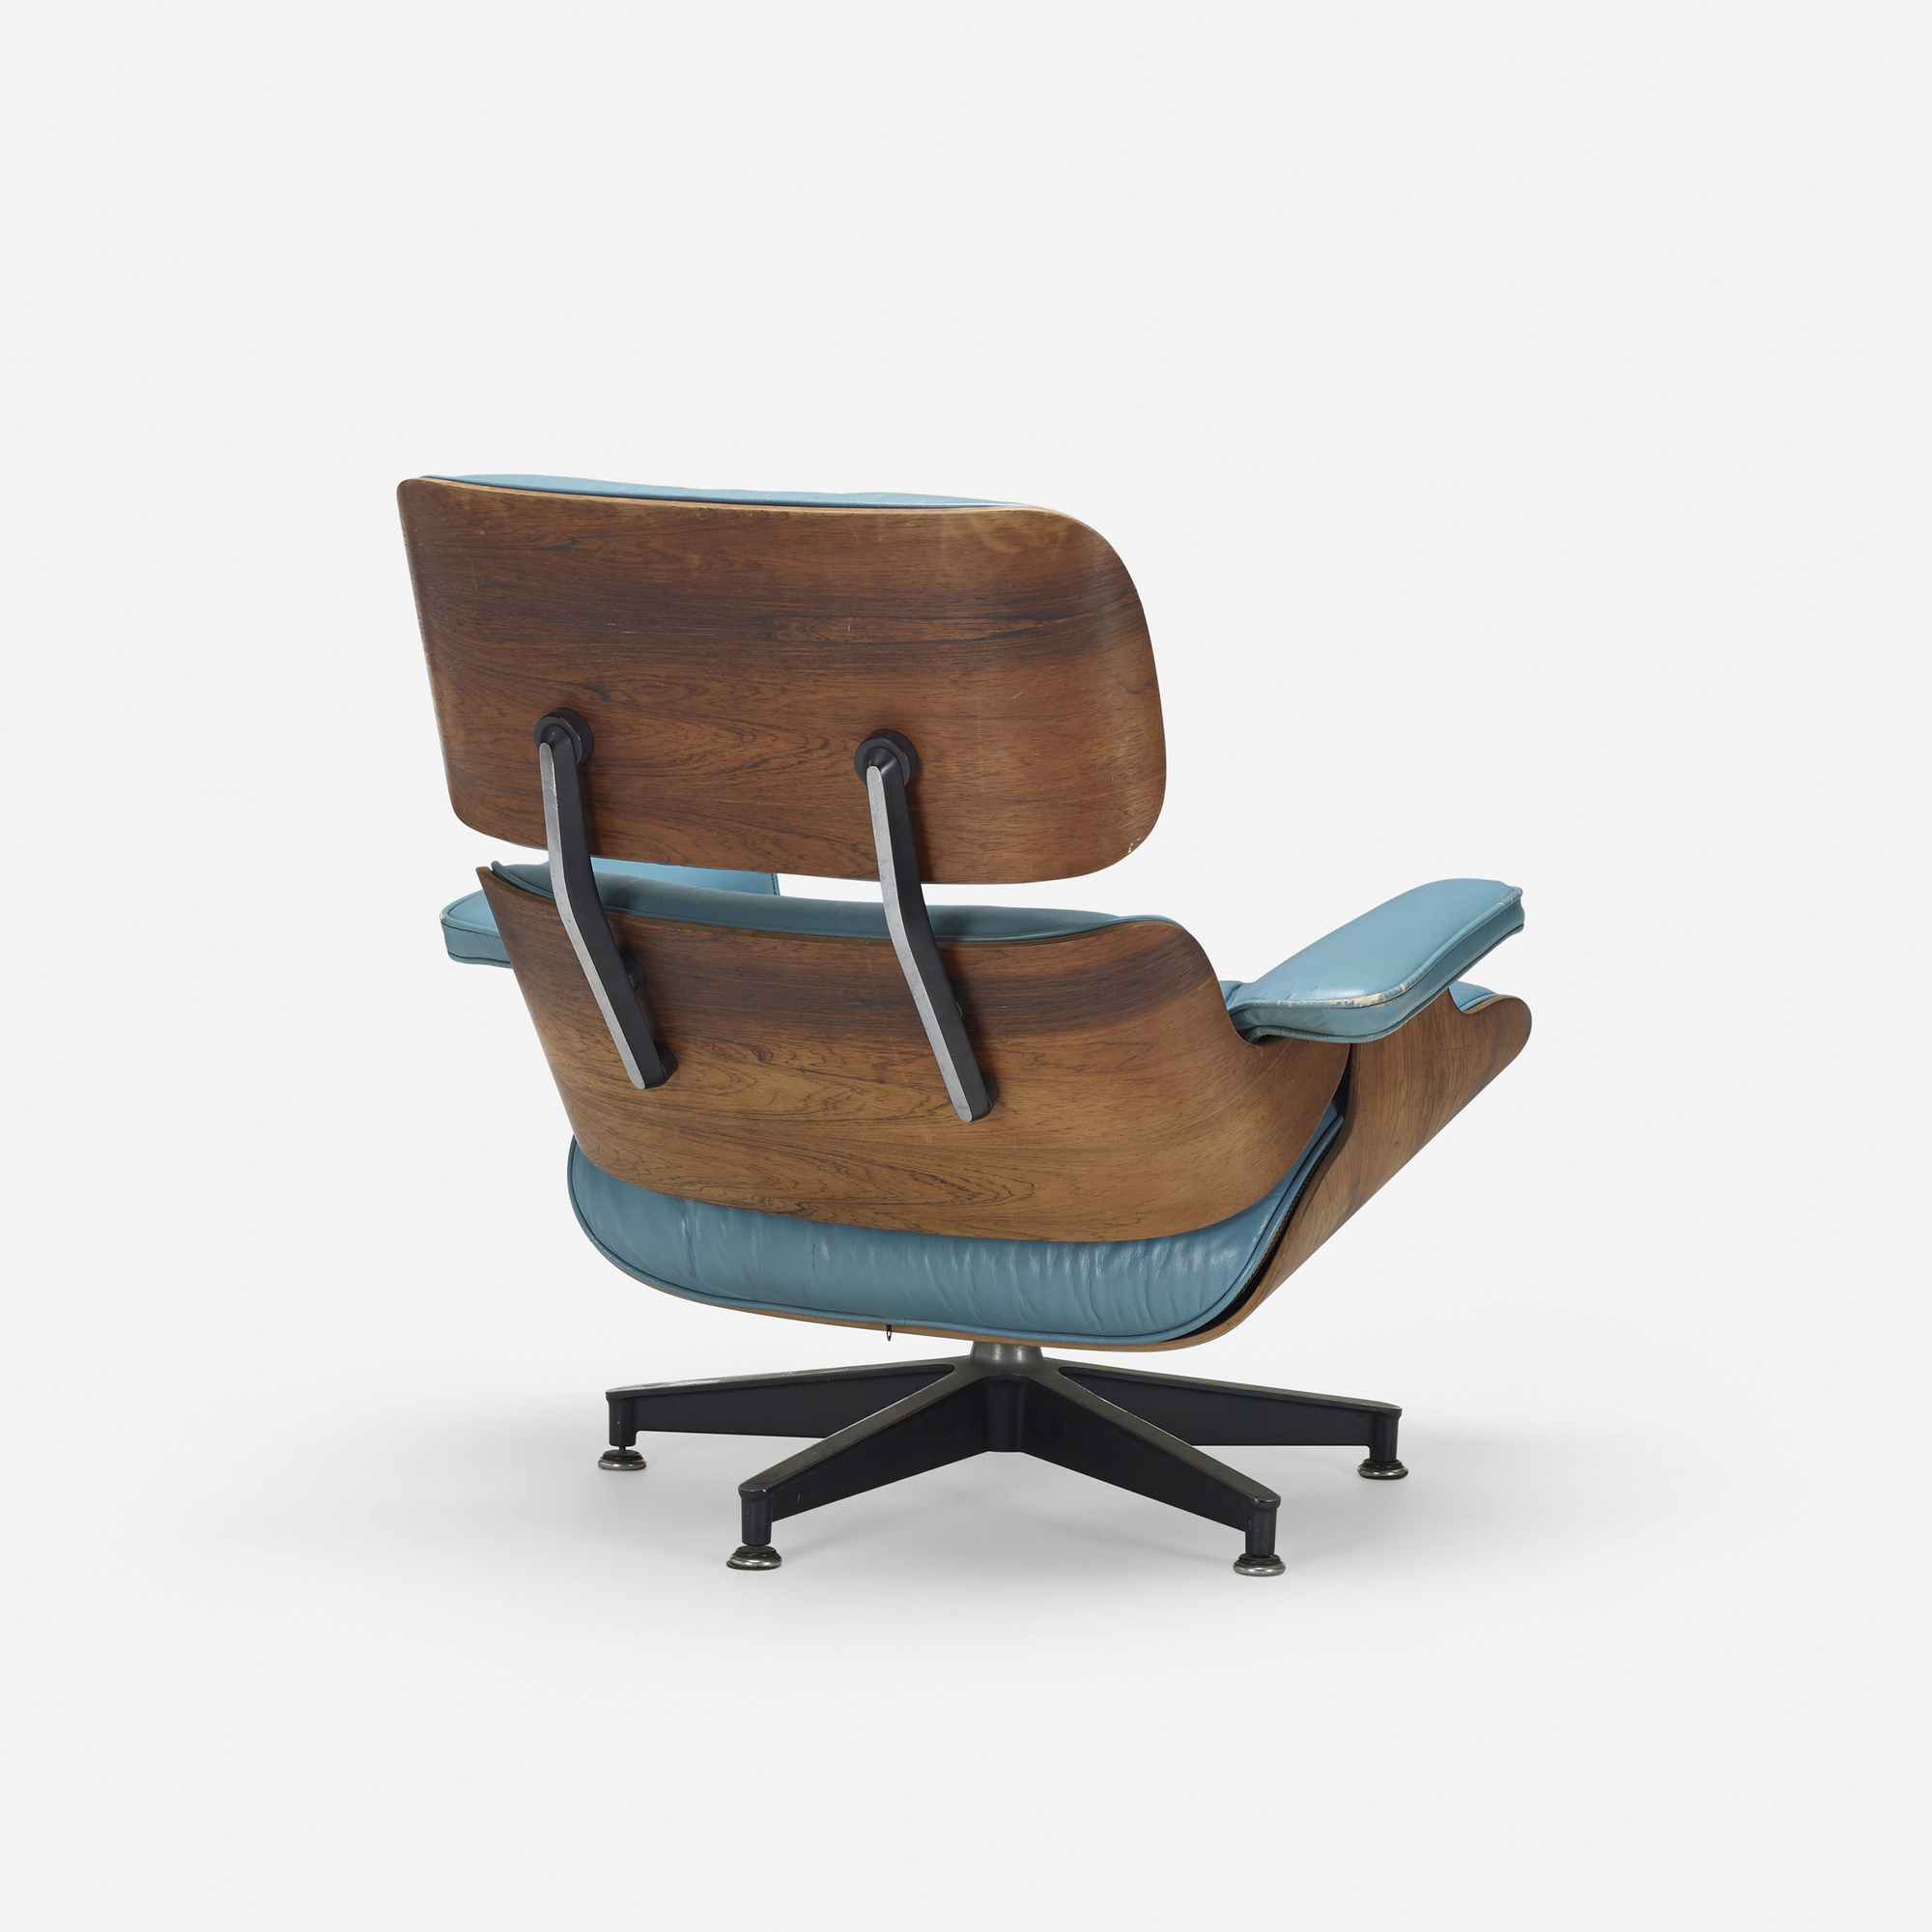 353 charles and ray eames special order 670 lounge chair for Special chair design